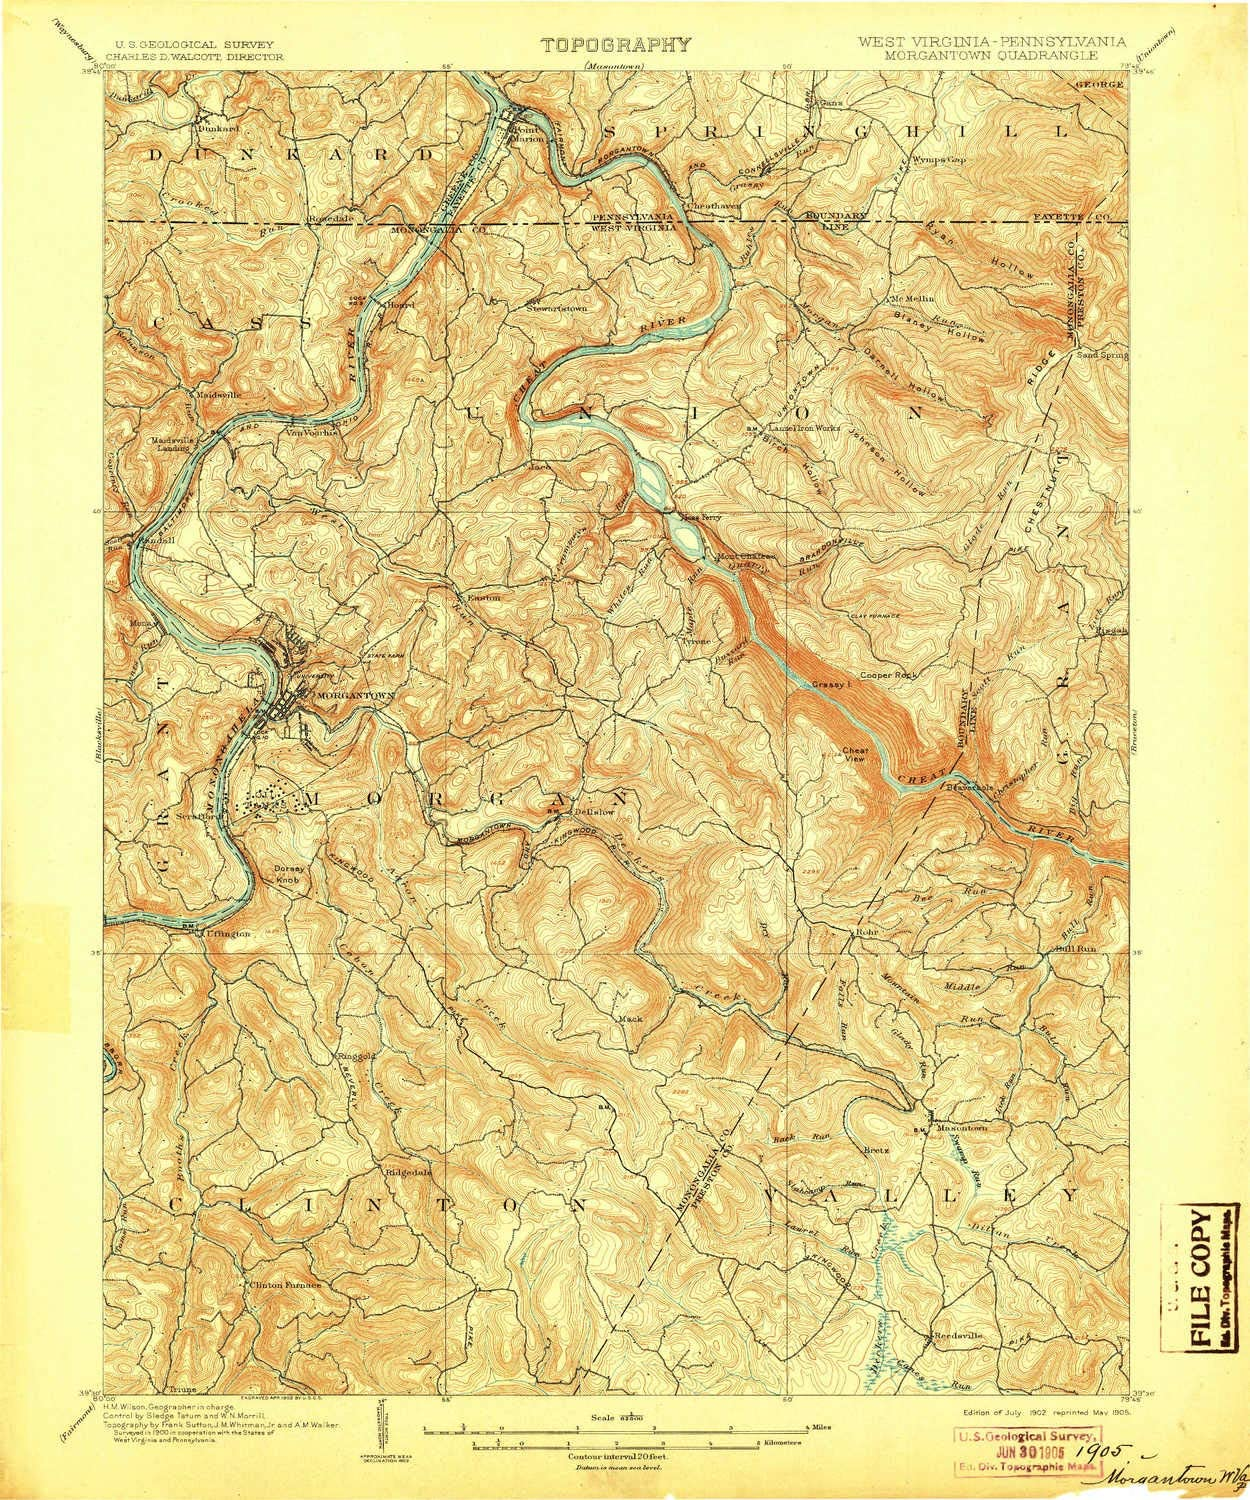 YellowMaps Morgantown WV topo map Oklahoma City Al sold out. Mall X 15 Minute 1:62500 Scale